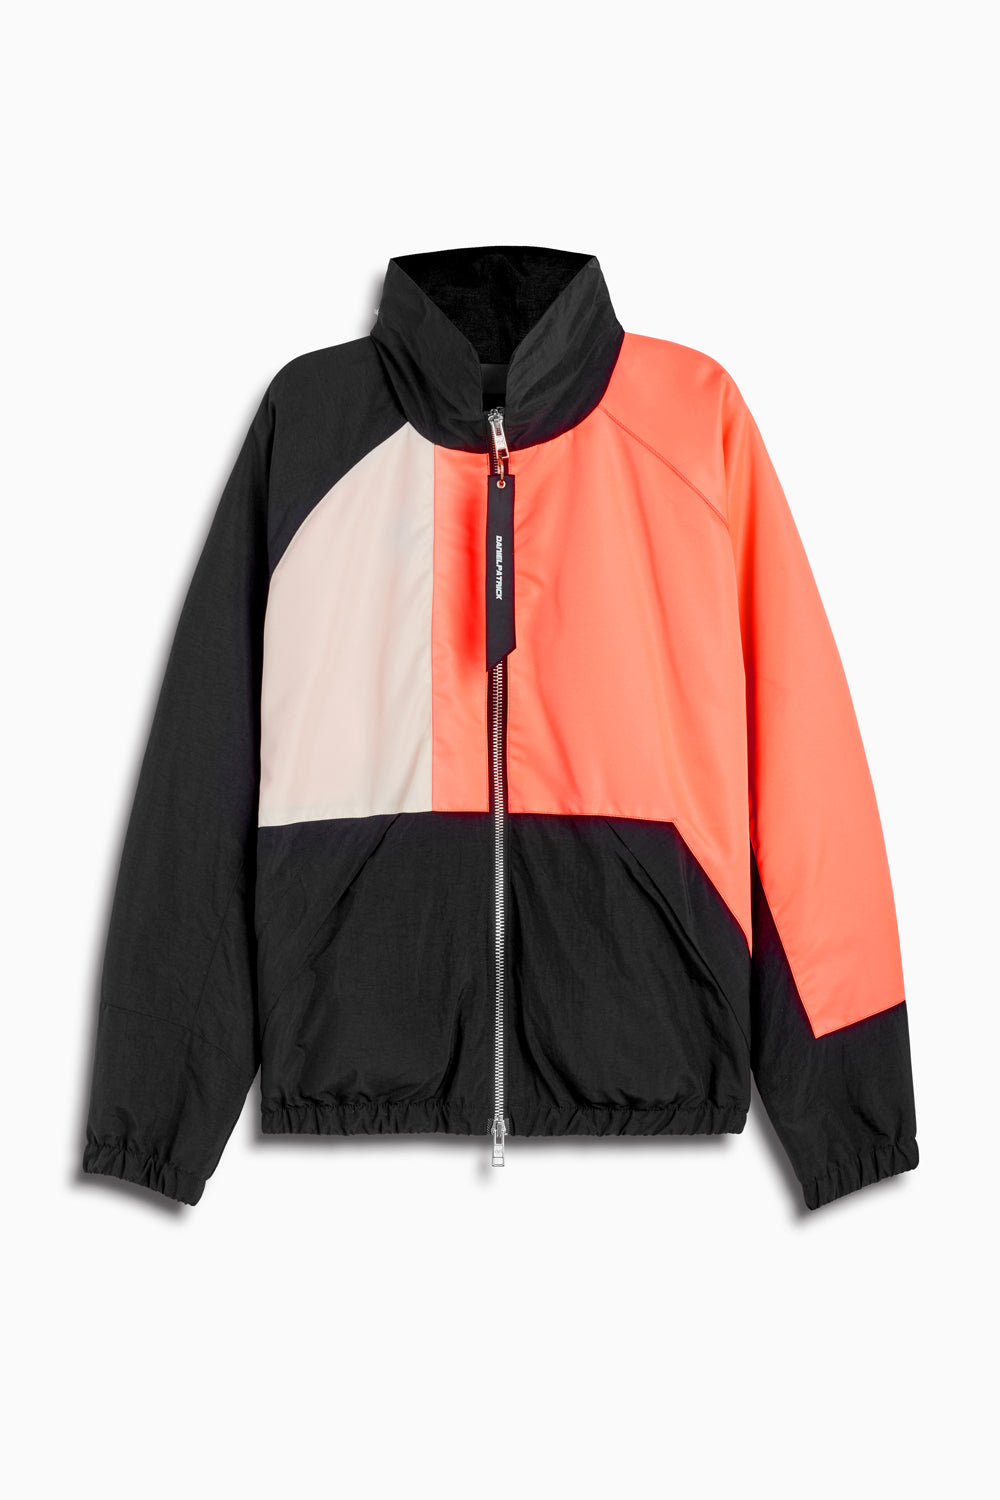 93 jacket in black/coral/ivory by daniel patrick